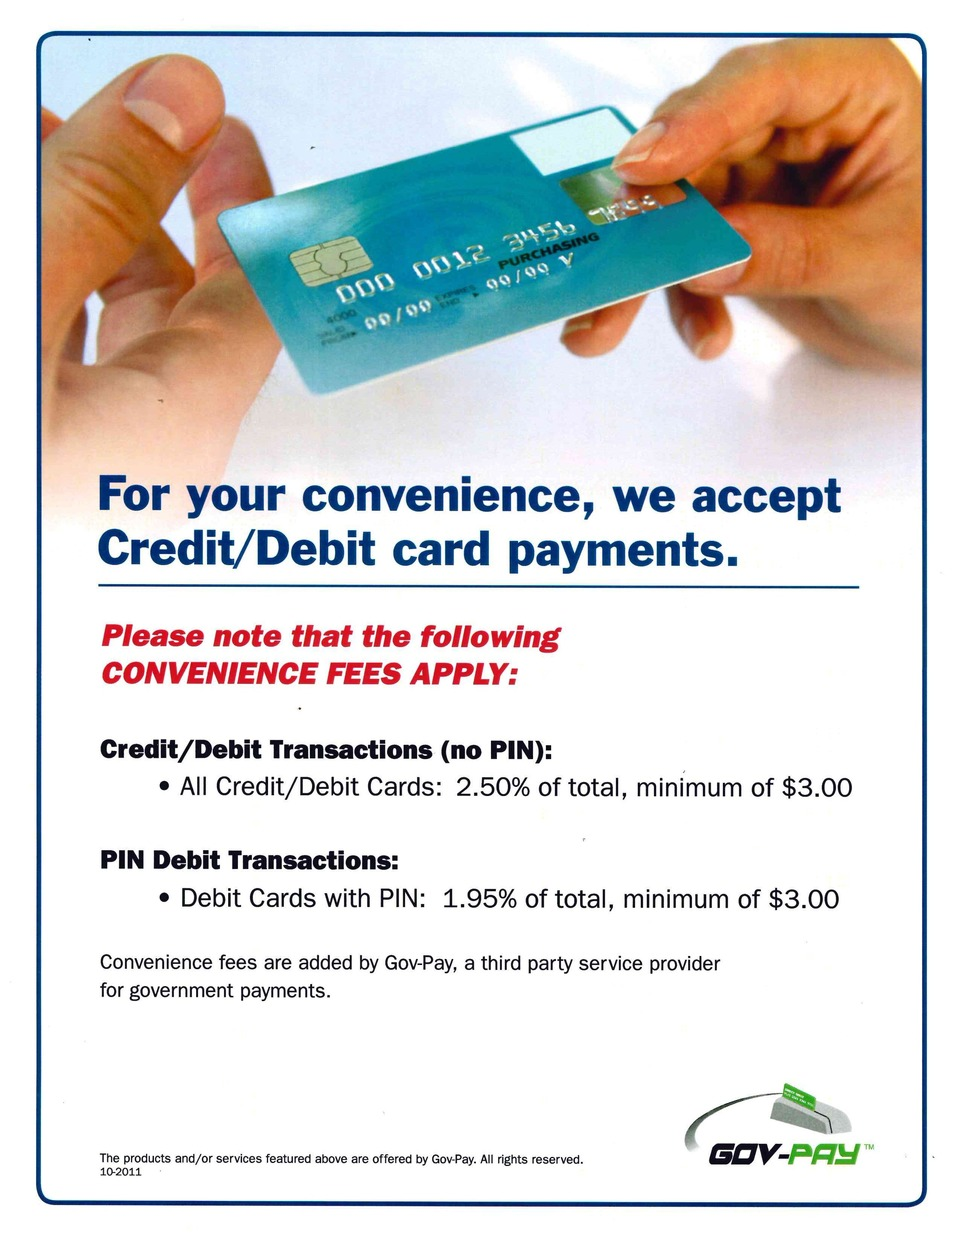 Credit/Debit Card Processing